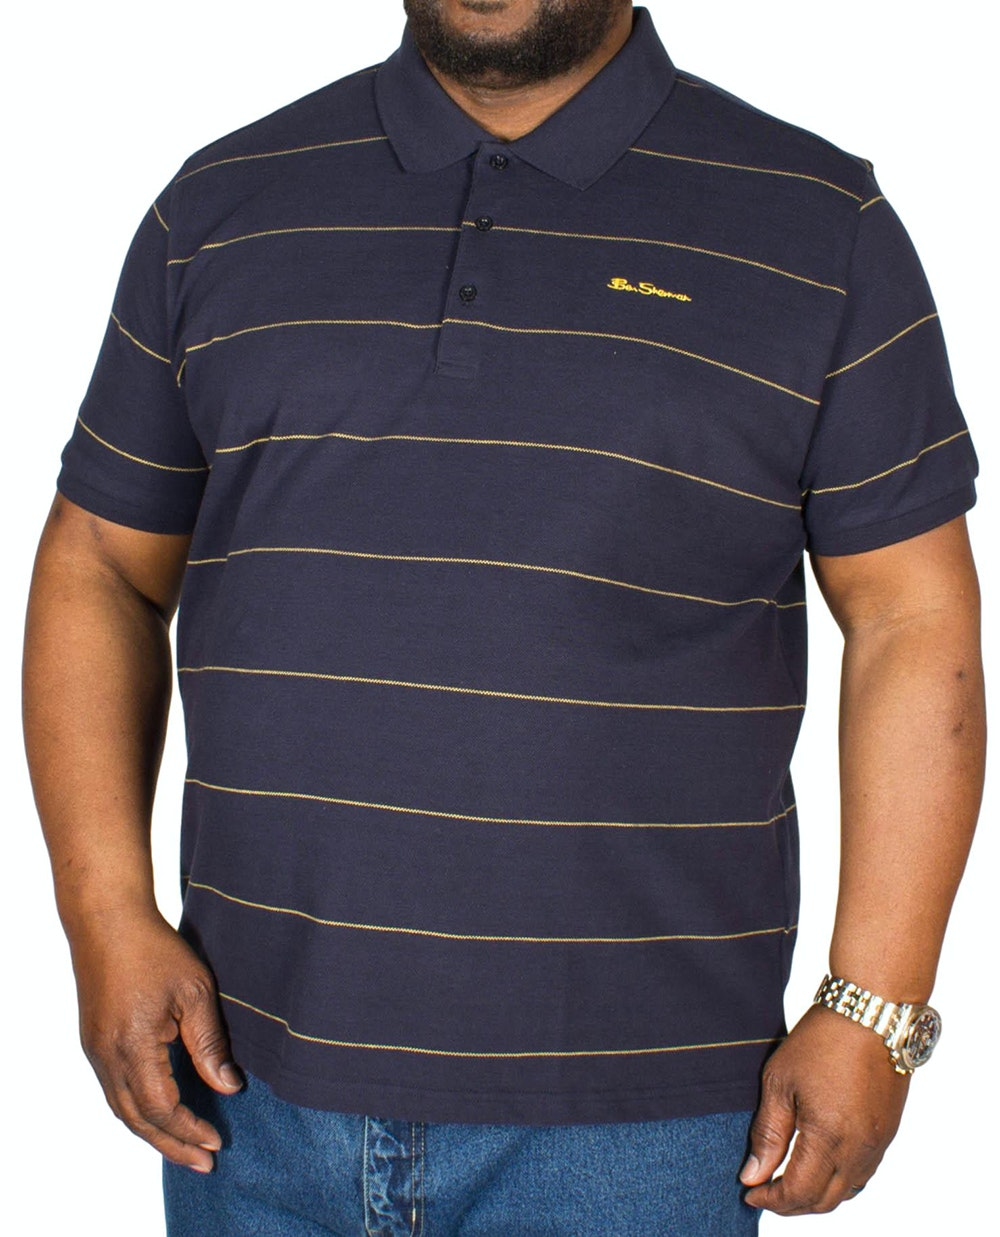 Ben Sherman Classic Stripe Polo Shirt Navy